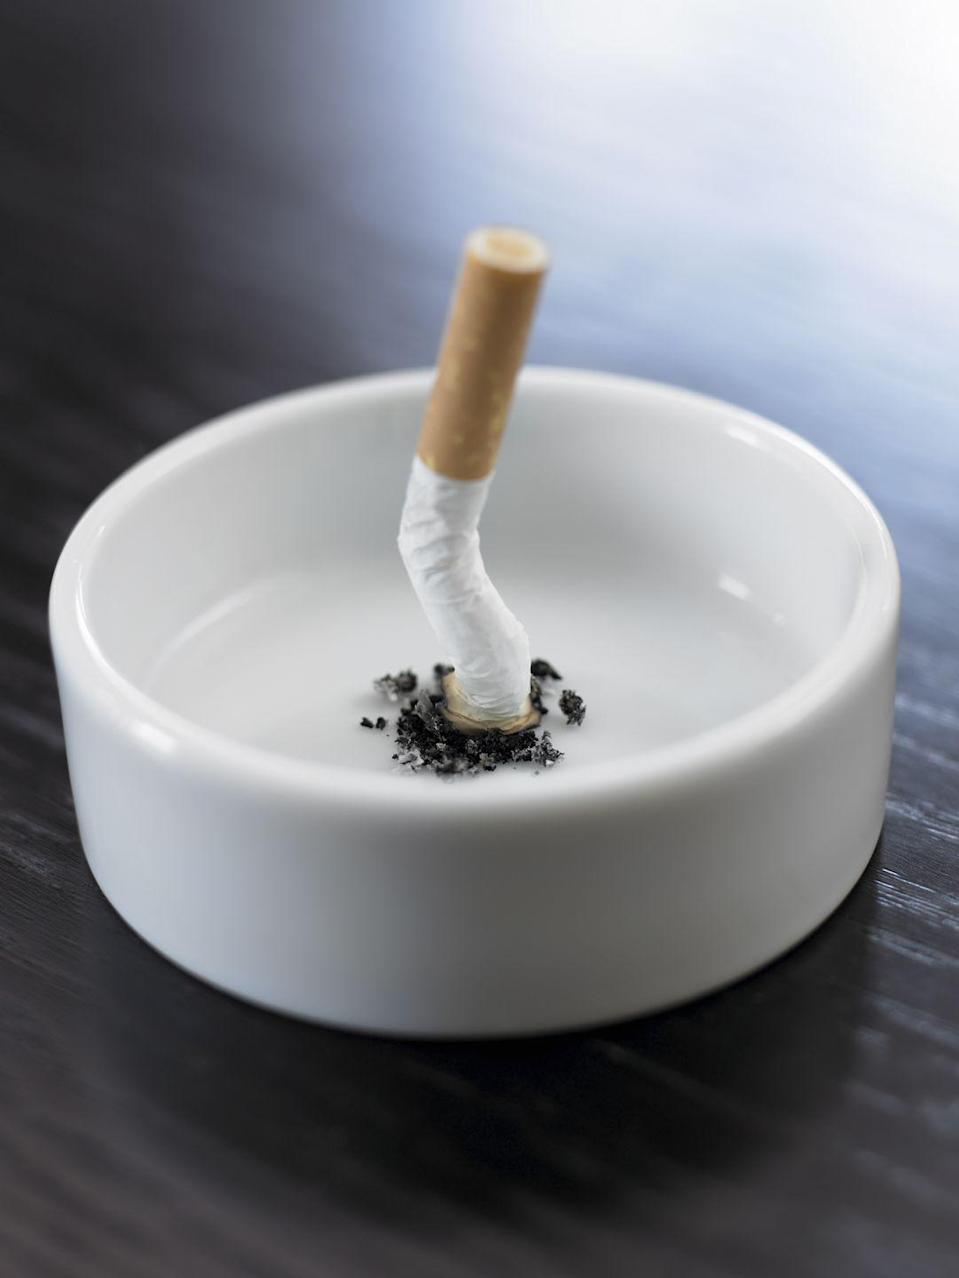 <p>Some indoor air pollutants can kill. Among the most dangerous is secondhand smoke. Thousands of children are hospitalized or sickened with respiratory tract infections each year, and smoke puts older adults with cardiovascular or lung illness at higher risk for health problems.</p><p>Since cigarettes are so harmful, never let anyone smoke inside your home. The Surgeon General states that there is no safe level of secondhand smoke. Ask smokers to take it outside.</p>